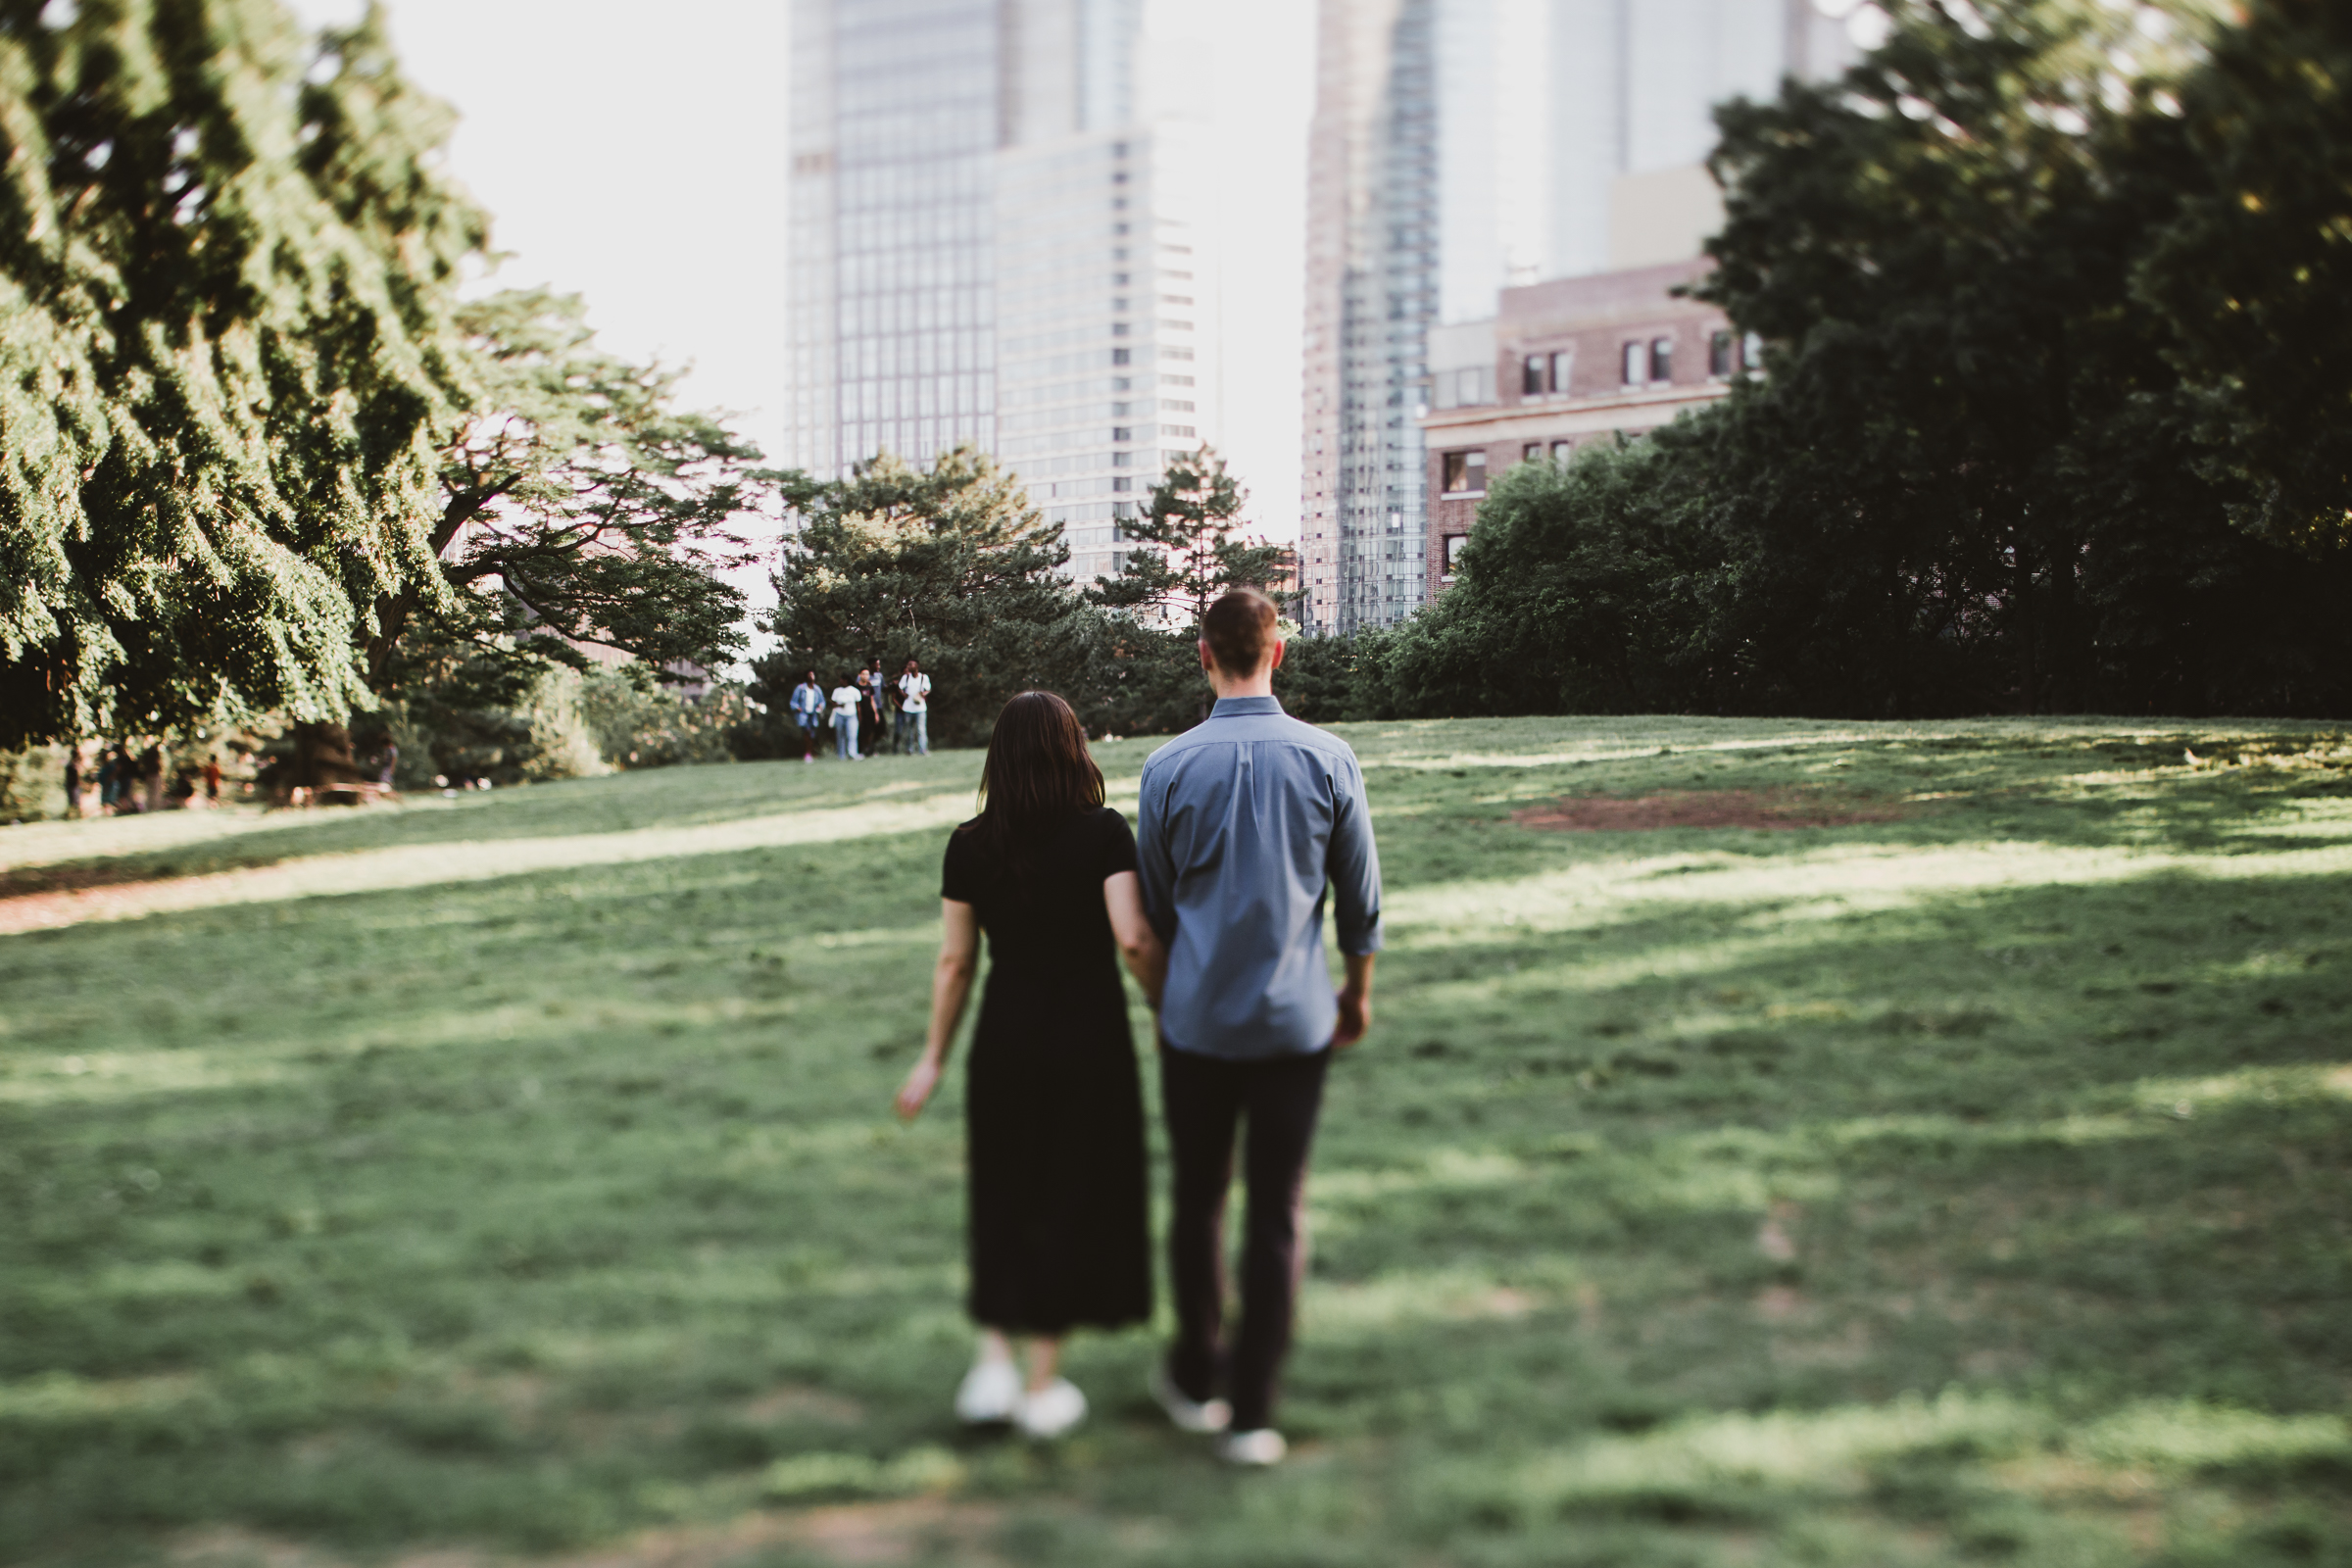 Fort-Greene-Park-Brooklyn-Engagement-Photos-5.jpg